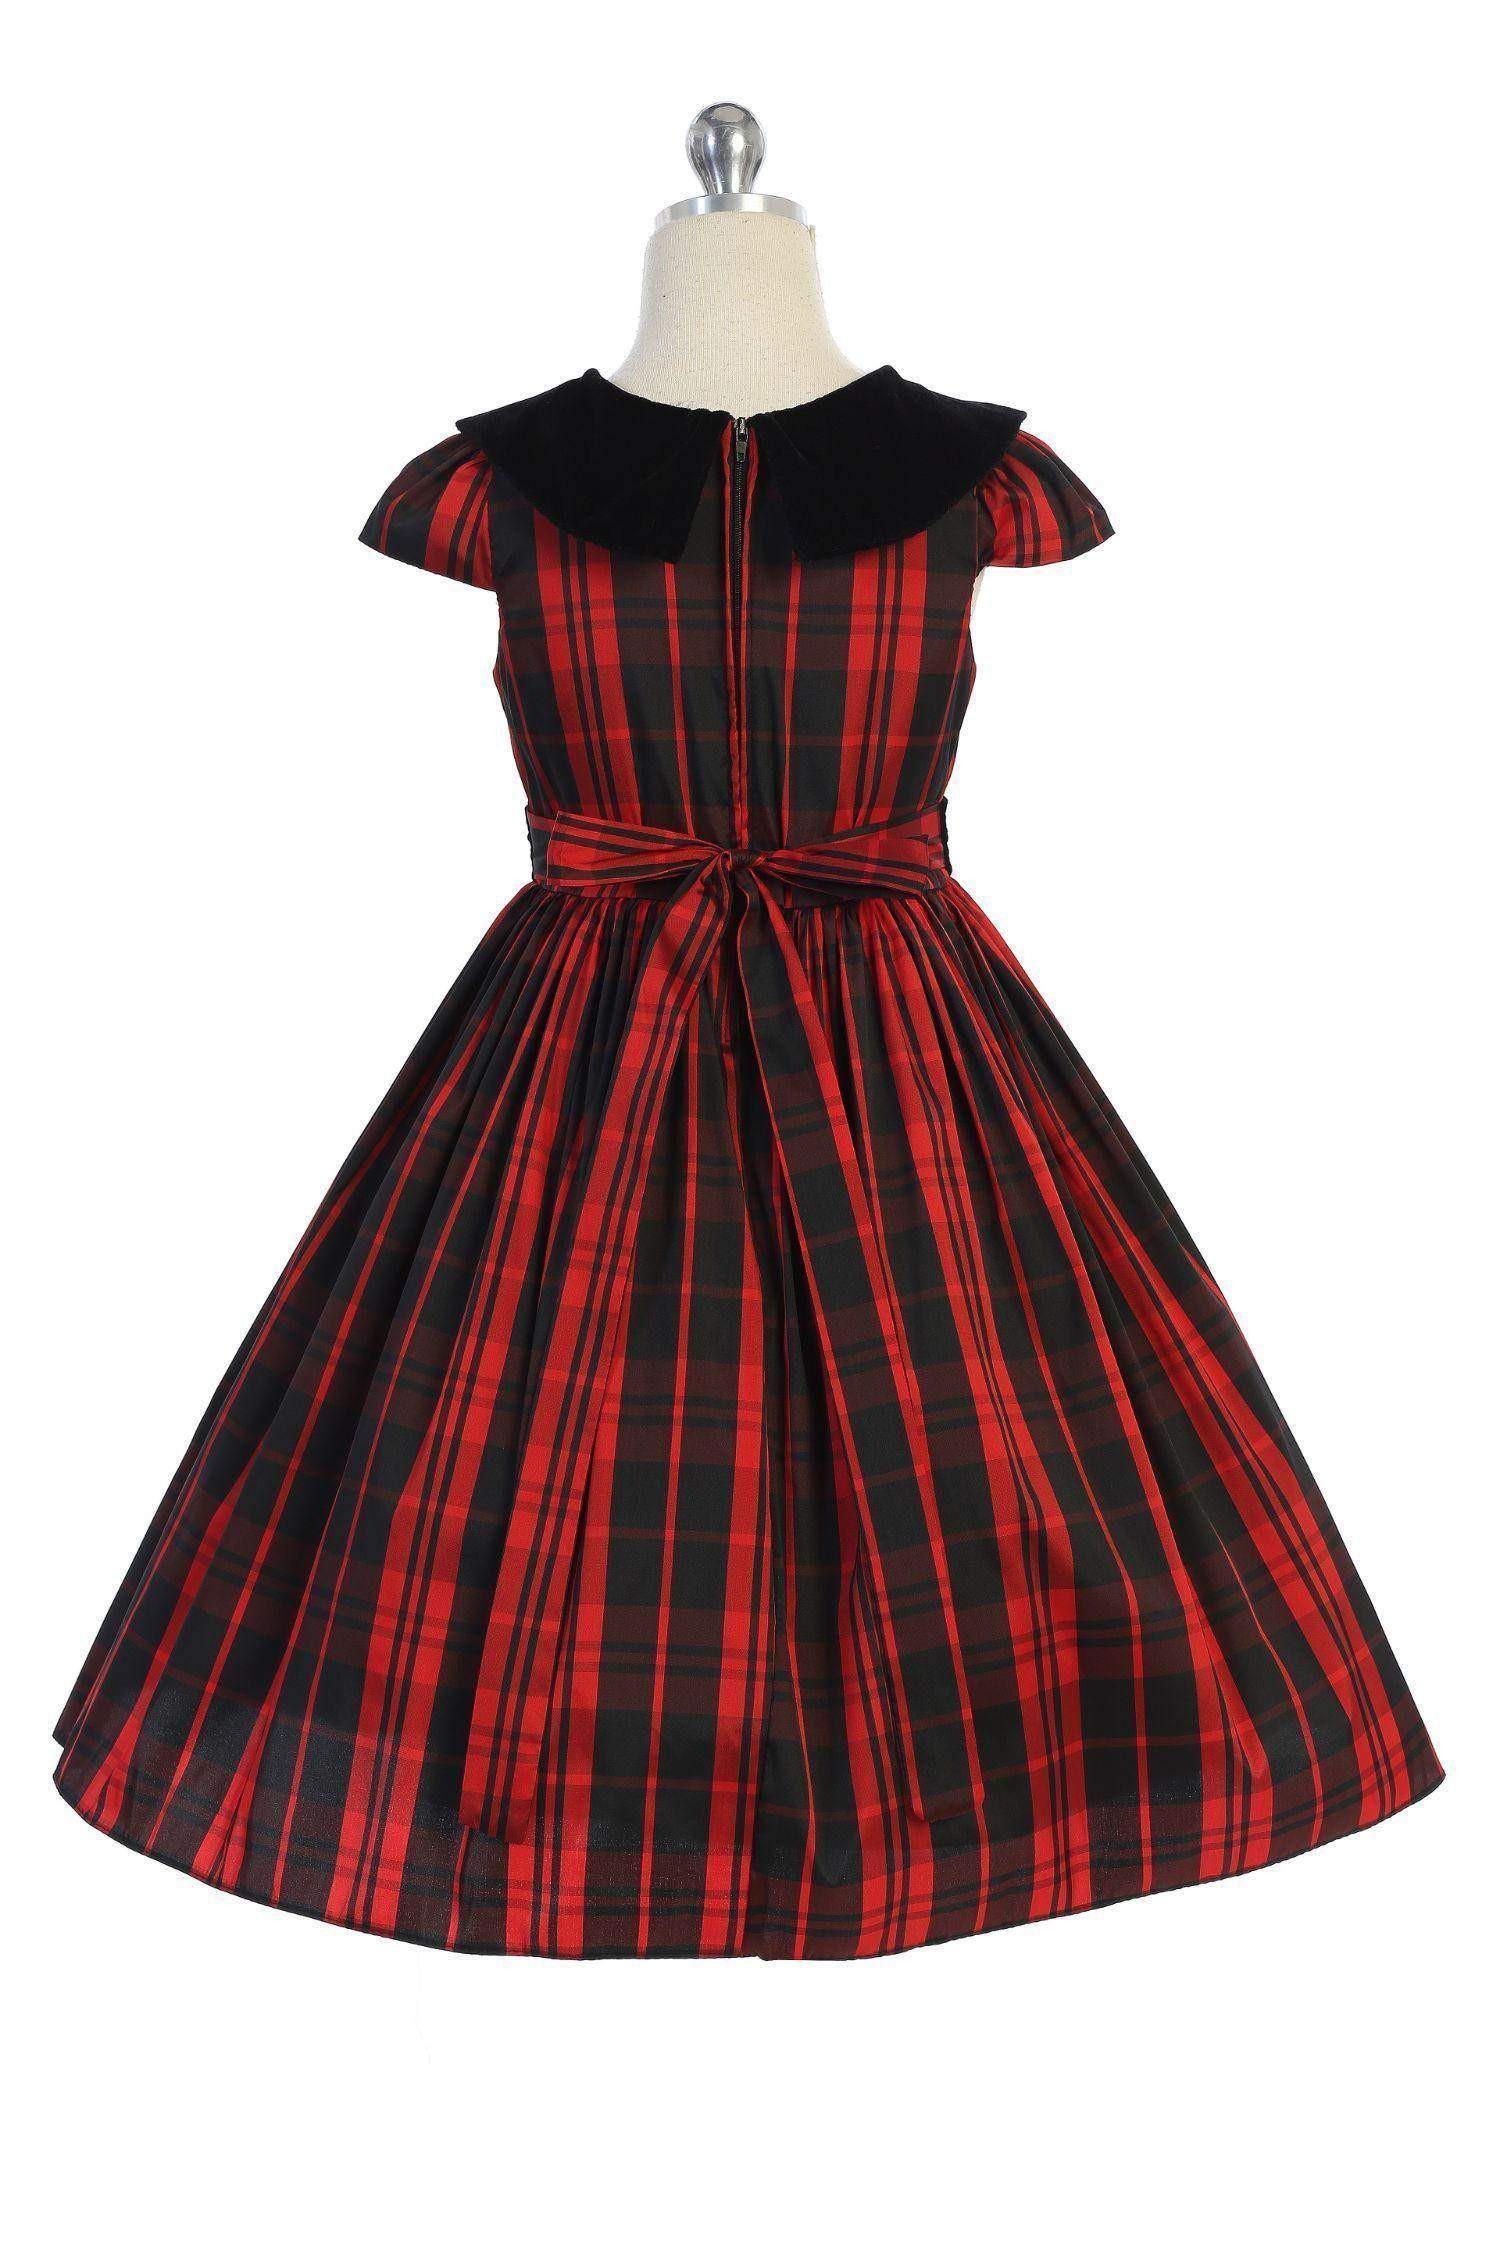 Classic Plaid with Velvet Collar Dress